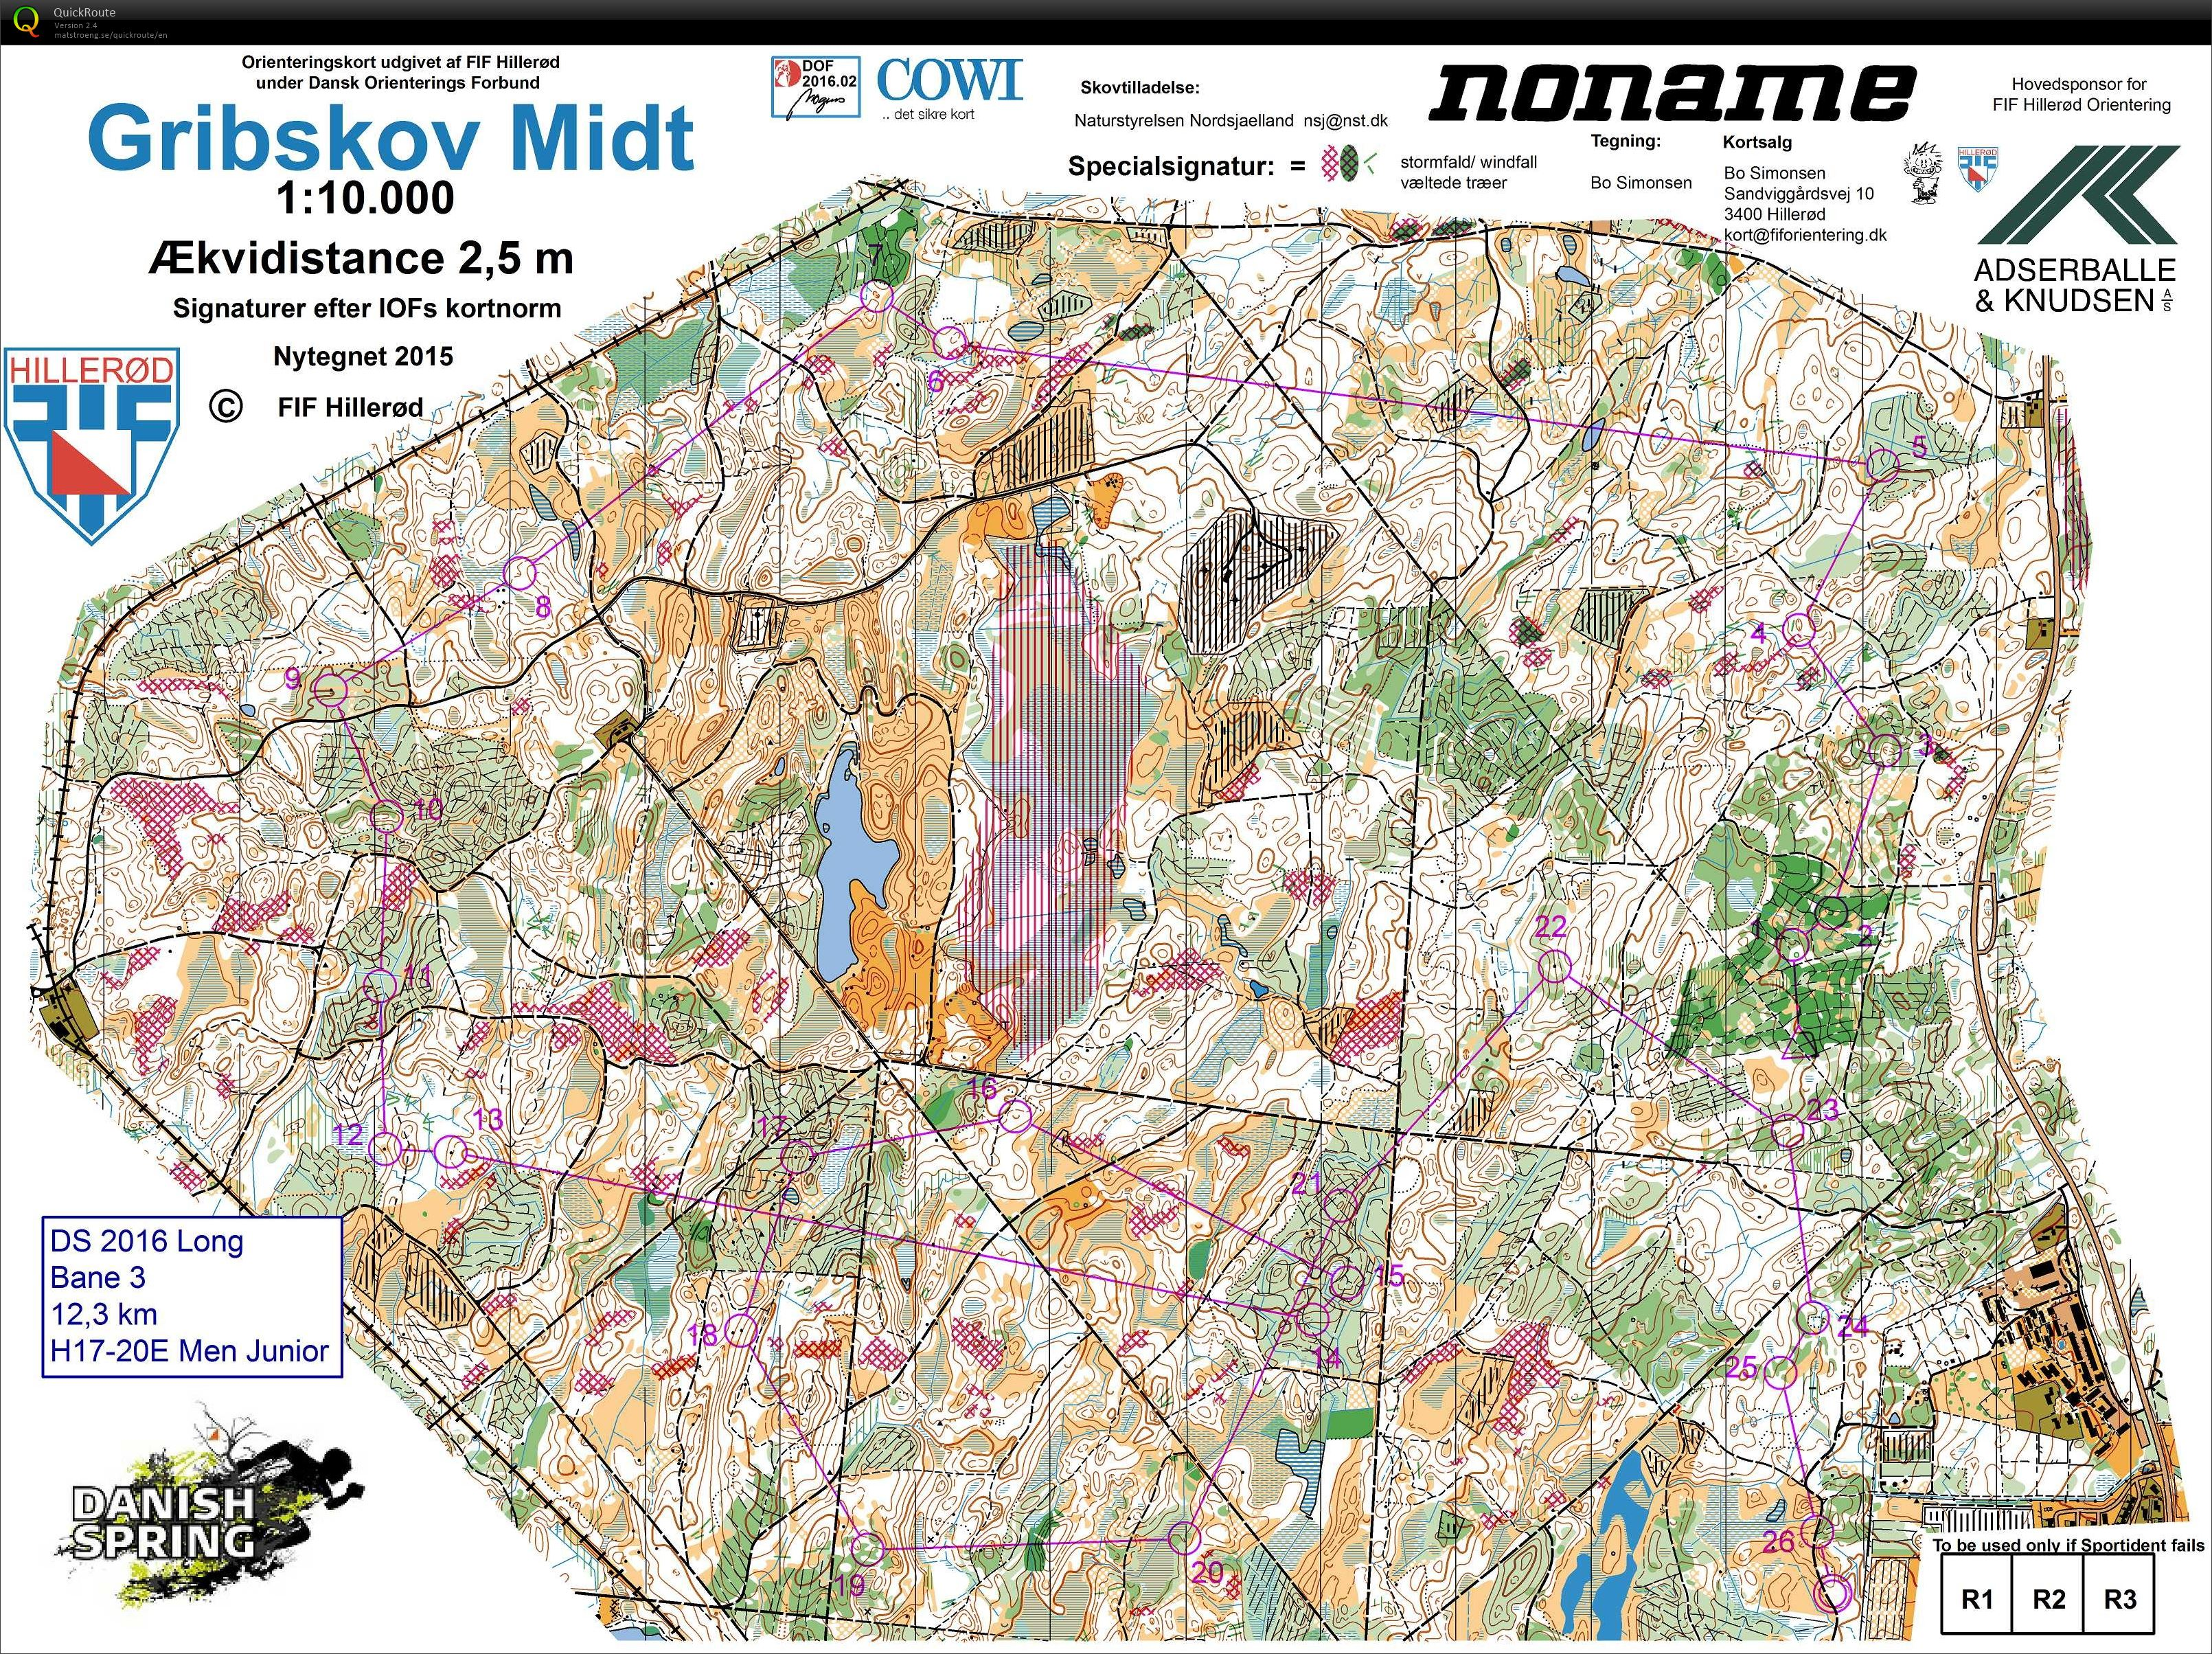 Danish Spring Langdistanse March 21st 2016 Orienteering Map